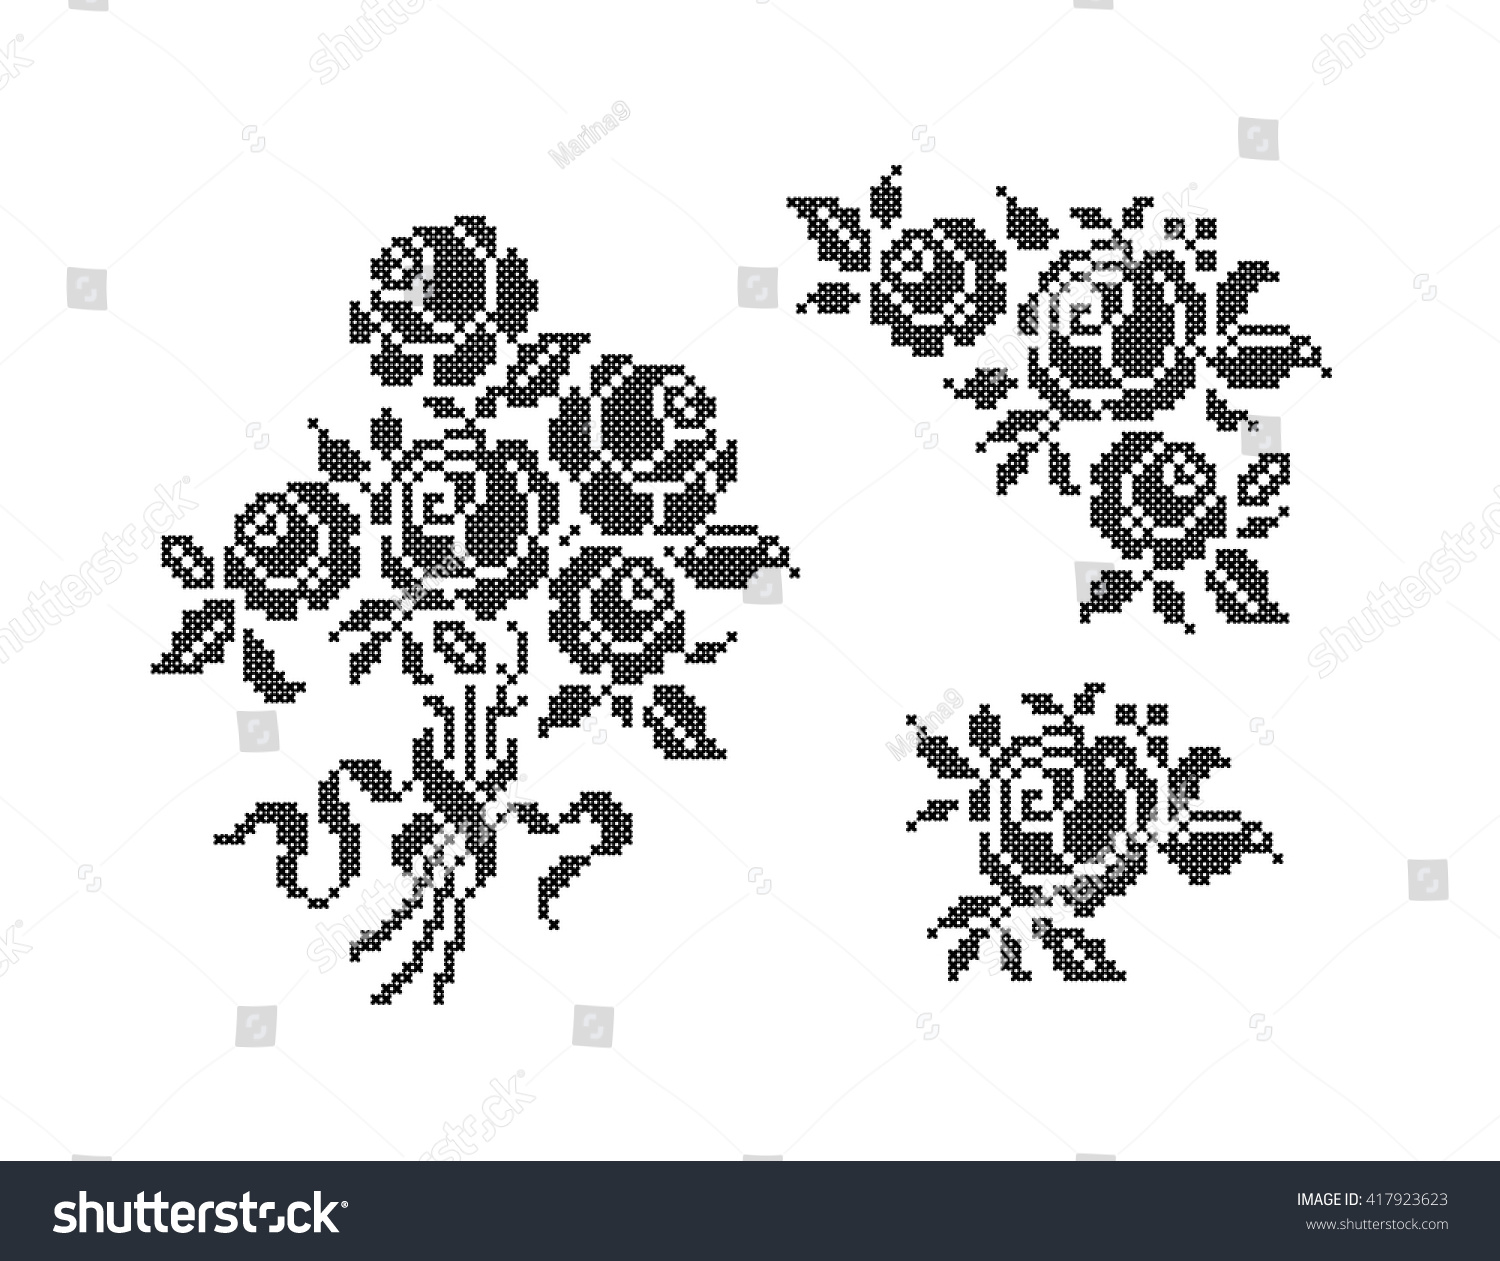 Embroidery of a flower. Scheme for beginners